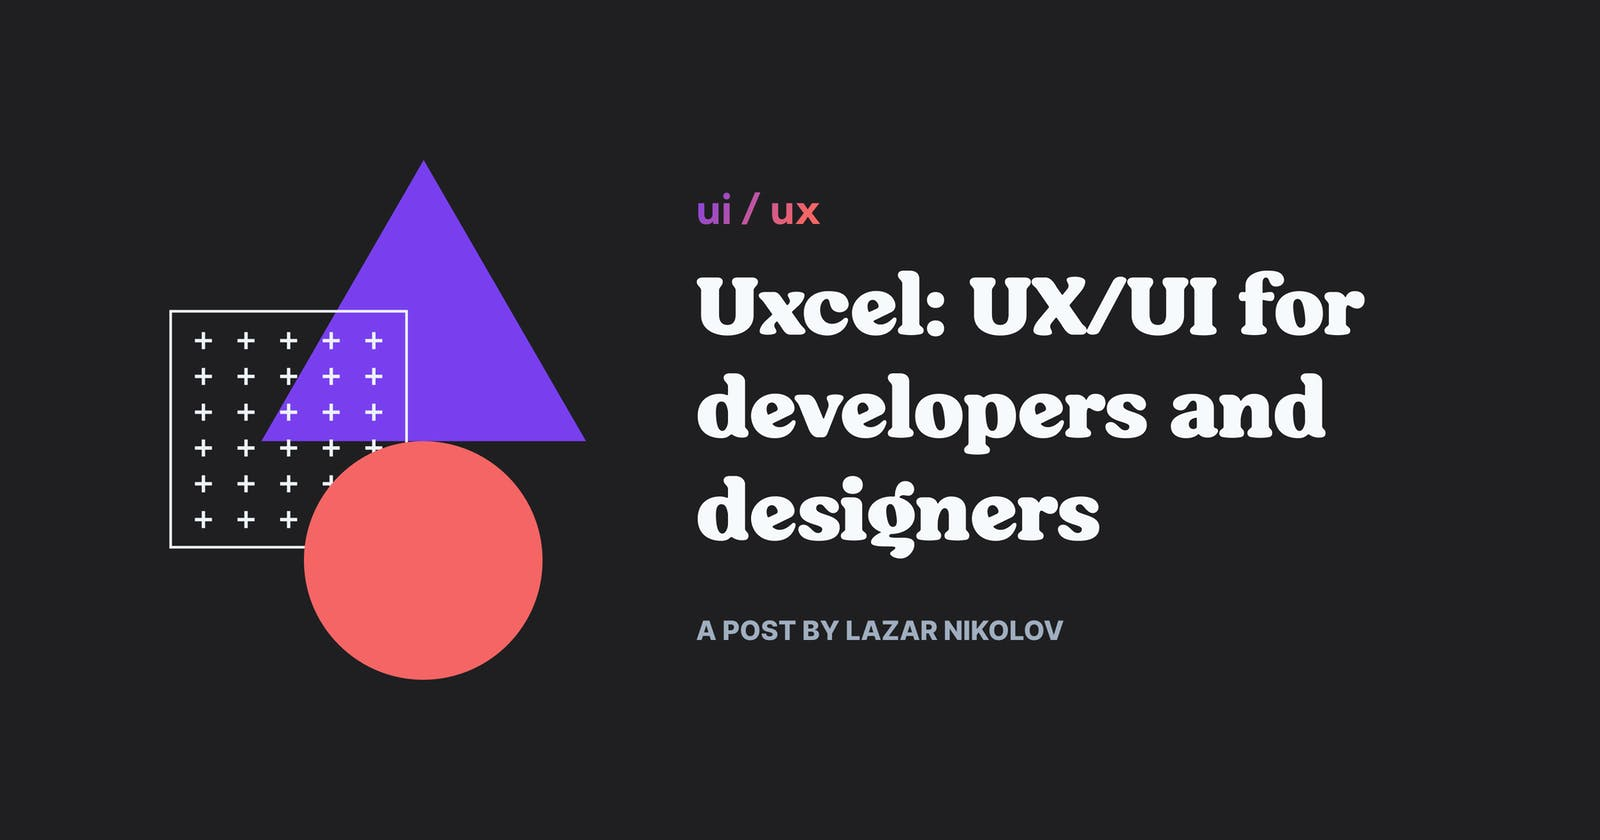 Uxcel: UX/UI for developers and designers